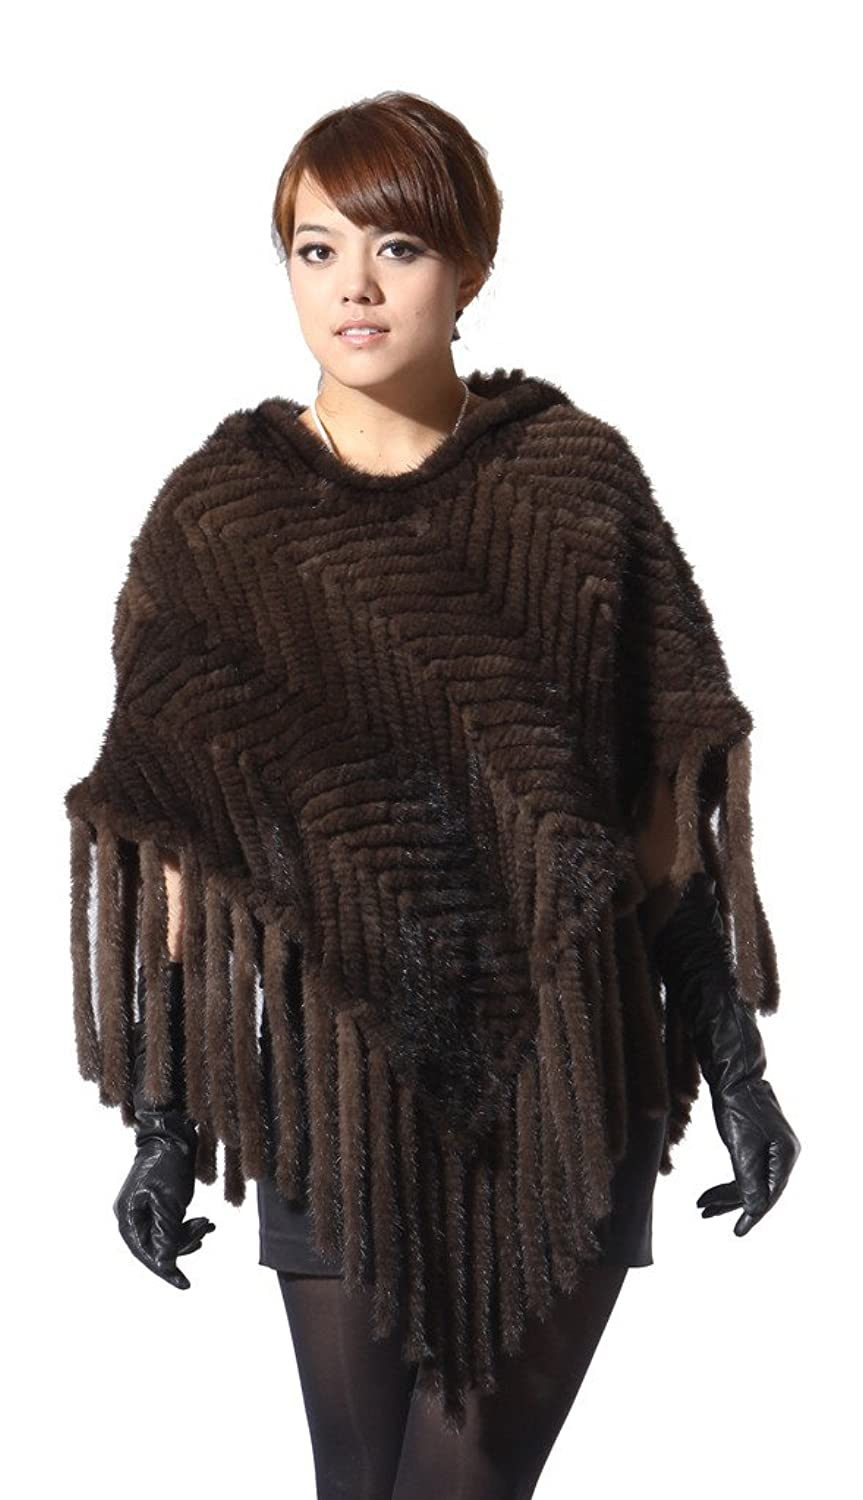 Vogueearth Damen 100%Echt Strick Gestricktes Nerz Pelz Fell Winter Warmer Schal Stola Poncho Cape